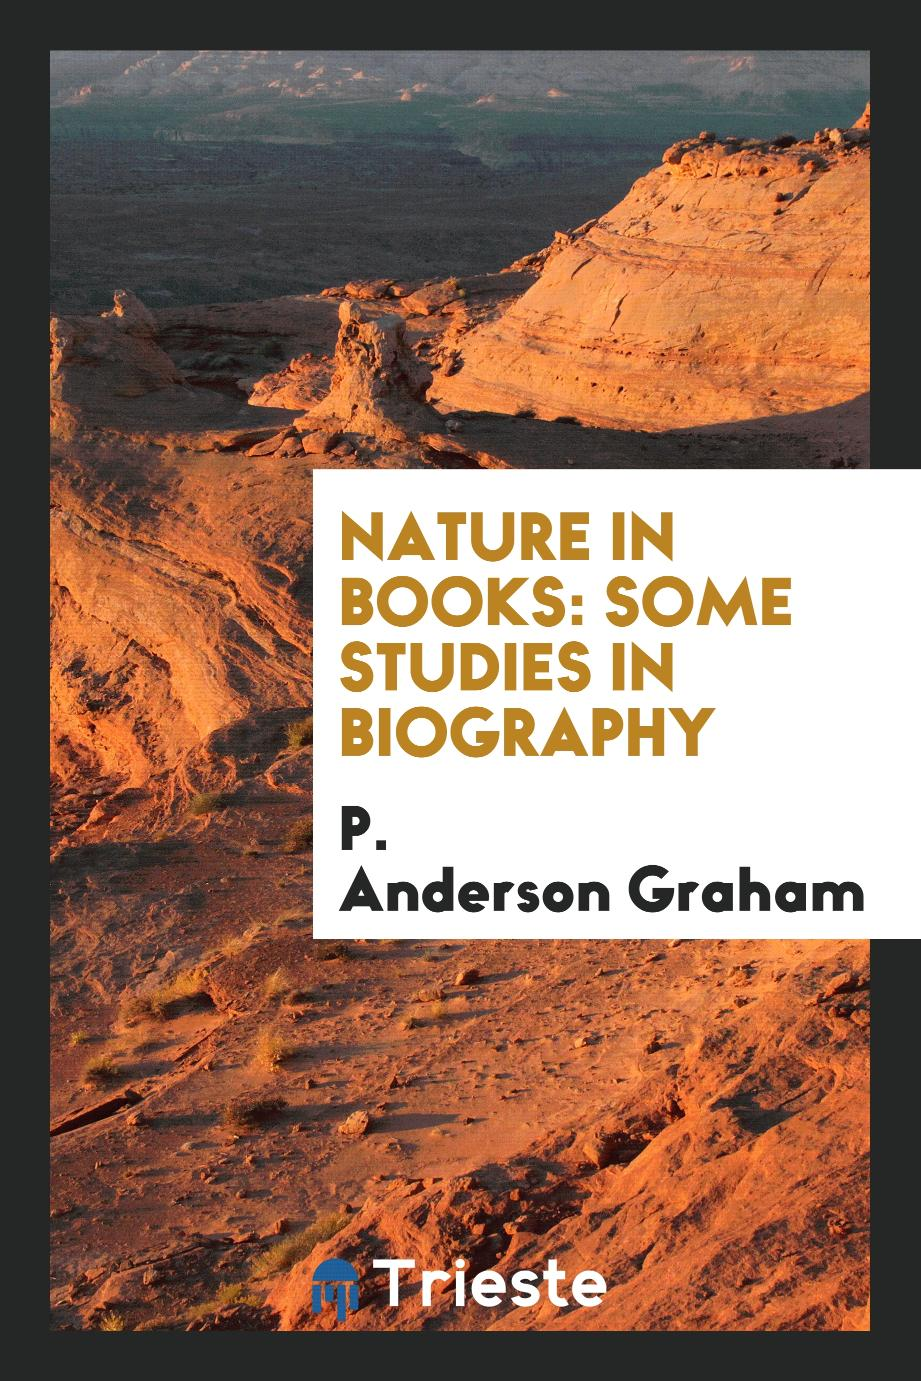 Nature in books: some studies in biography